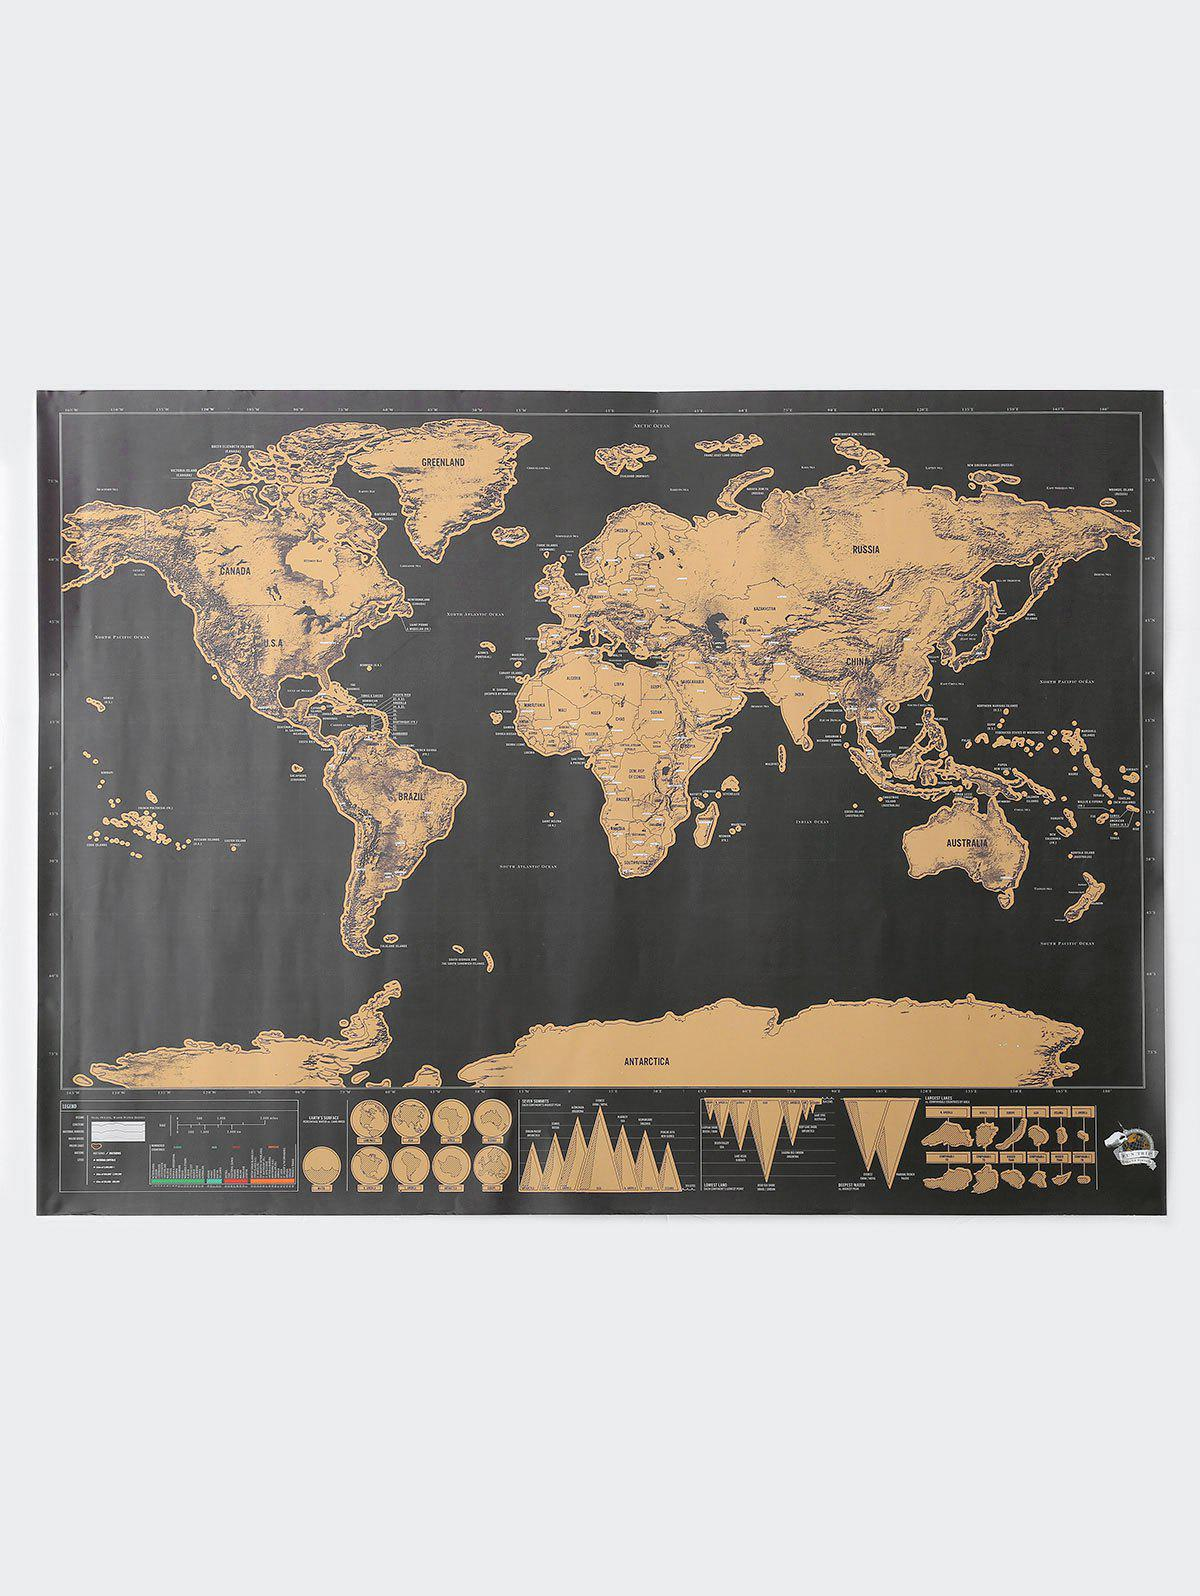 2018 deluxe scratch off world map poster bronze colored cm in deluxe scratch off world map poster bronze colored 825594cm gumiabroncs Gallery